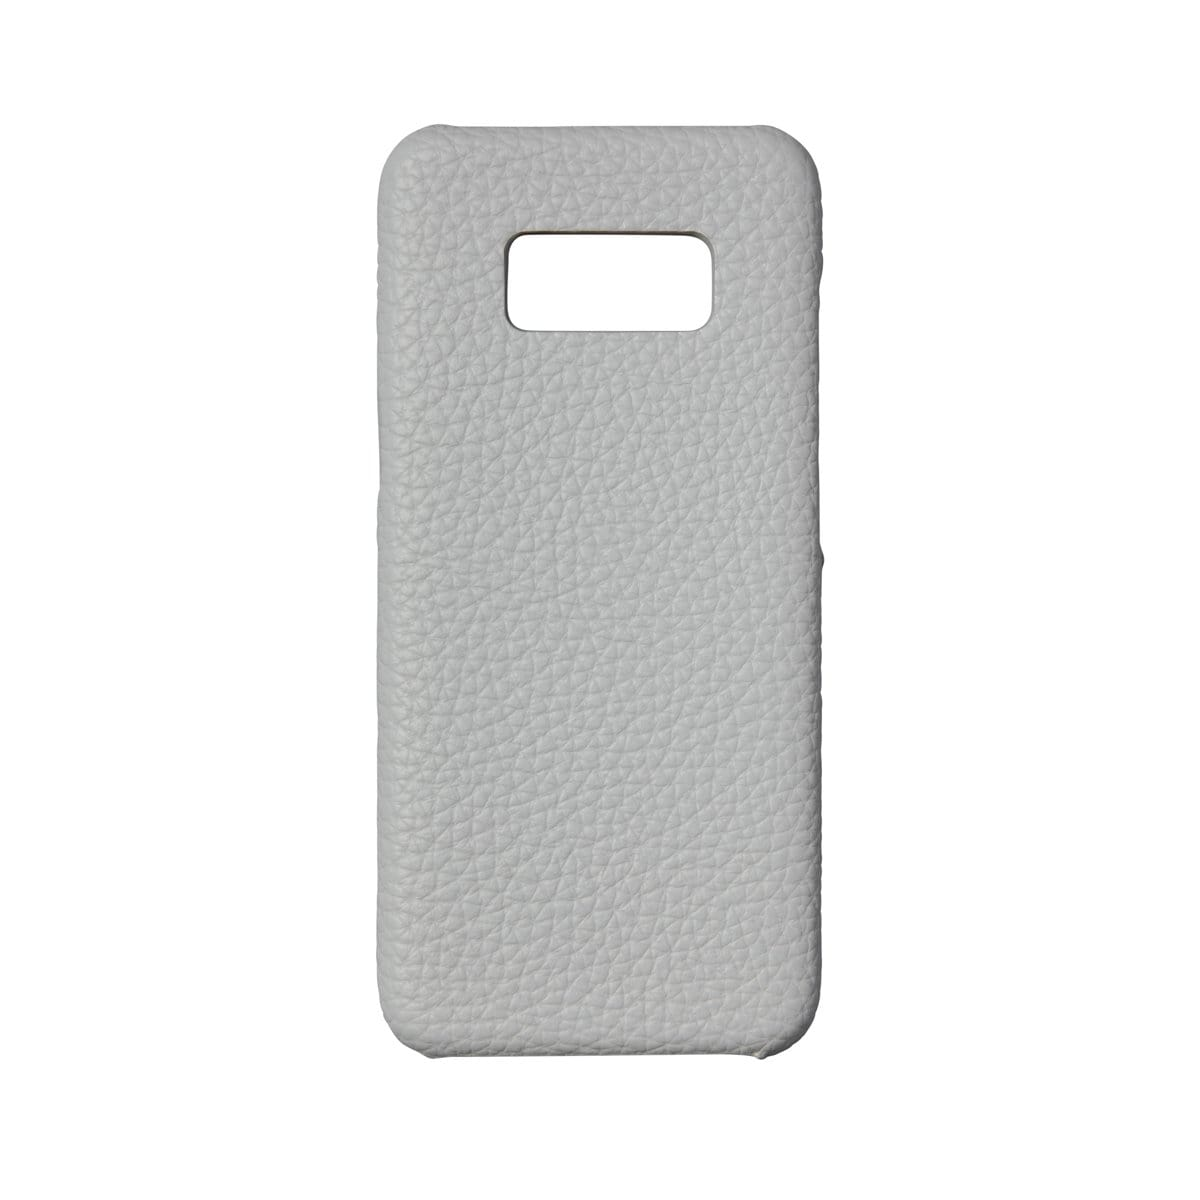 Parma Grey Phone Case (Samsung 8)